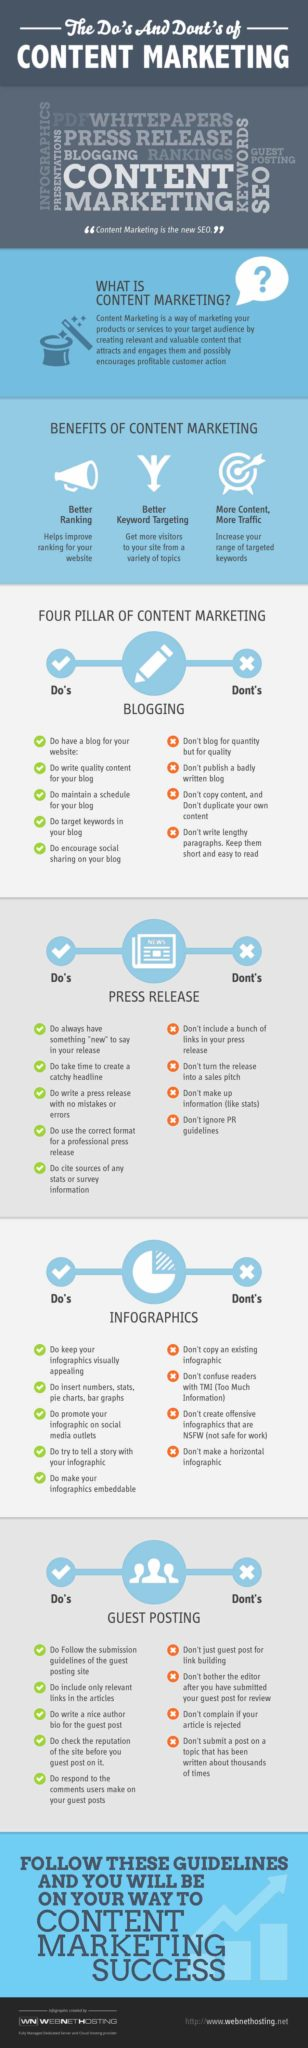 content marketing infographics do's and don'ts